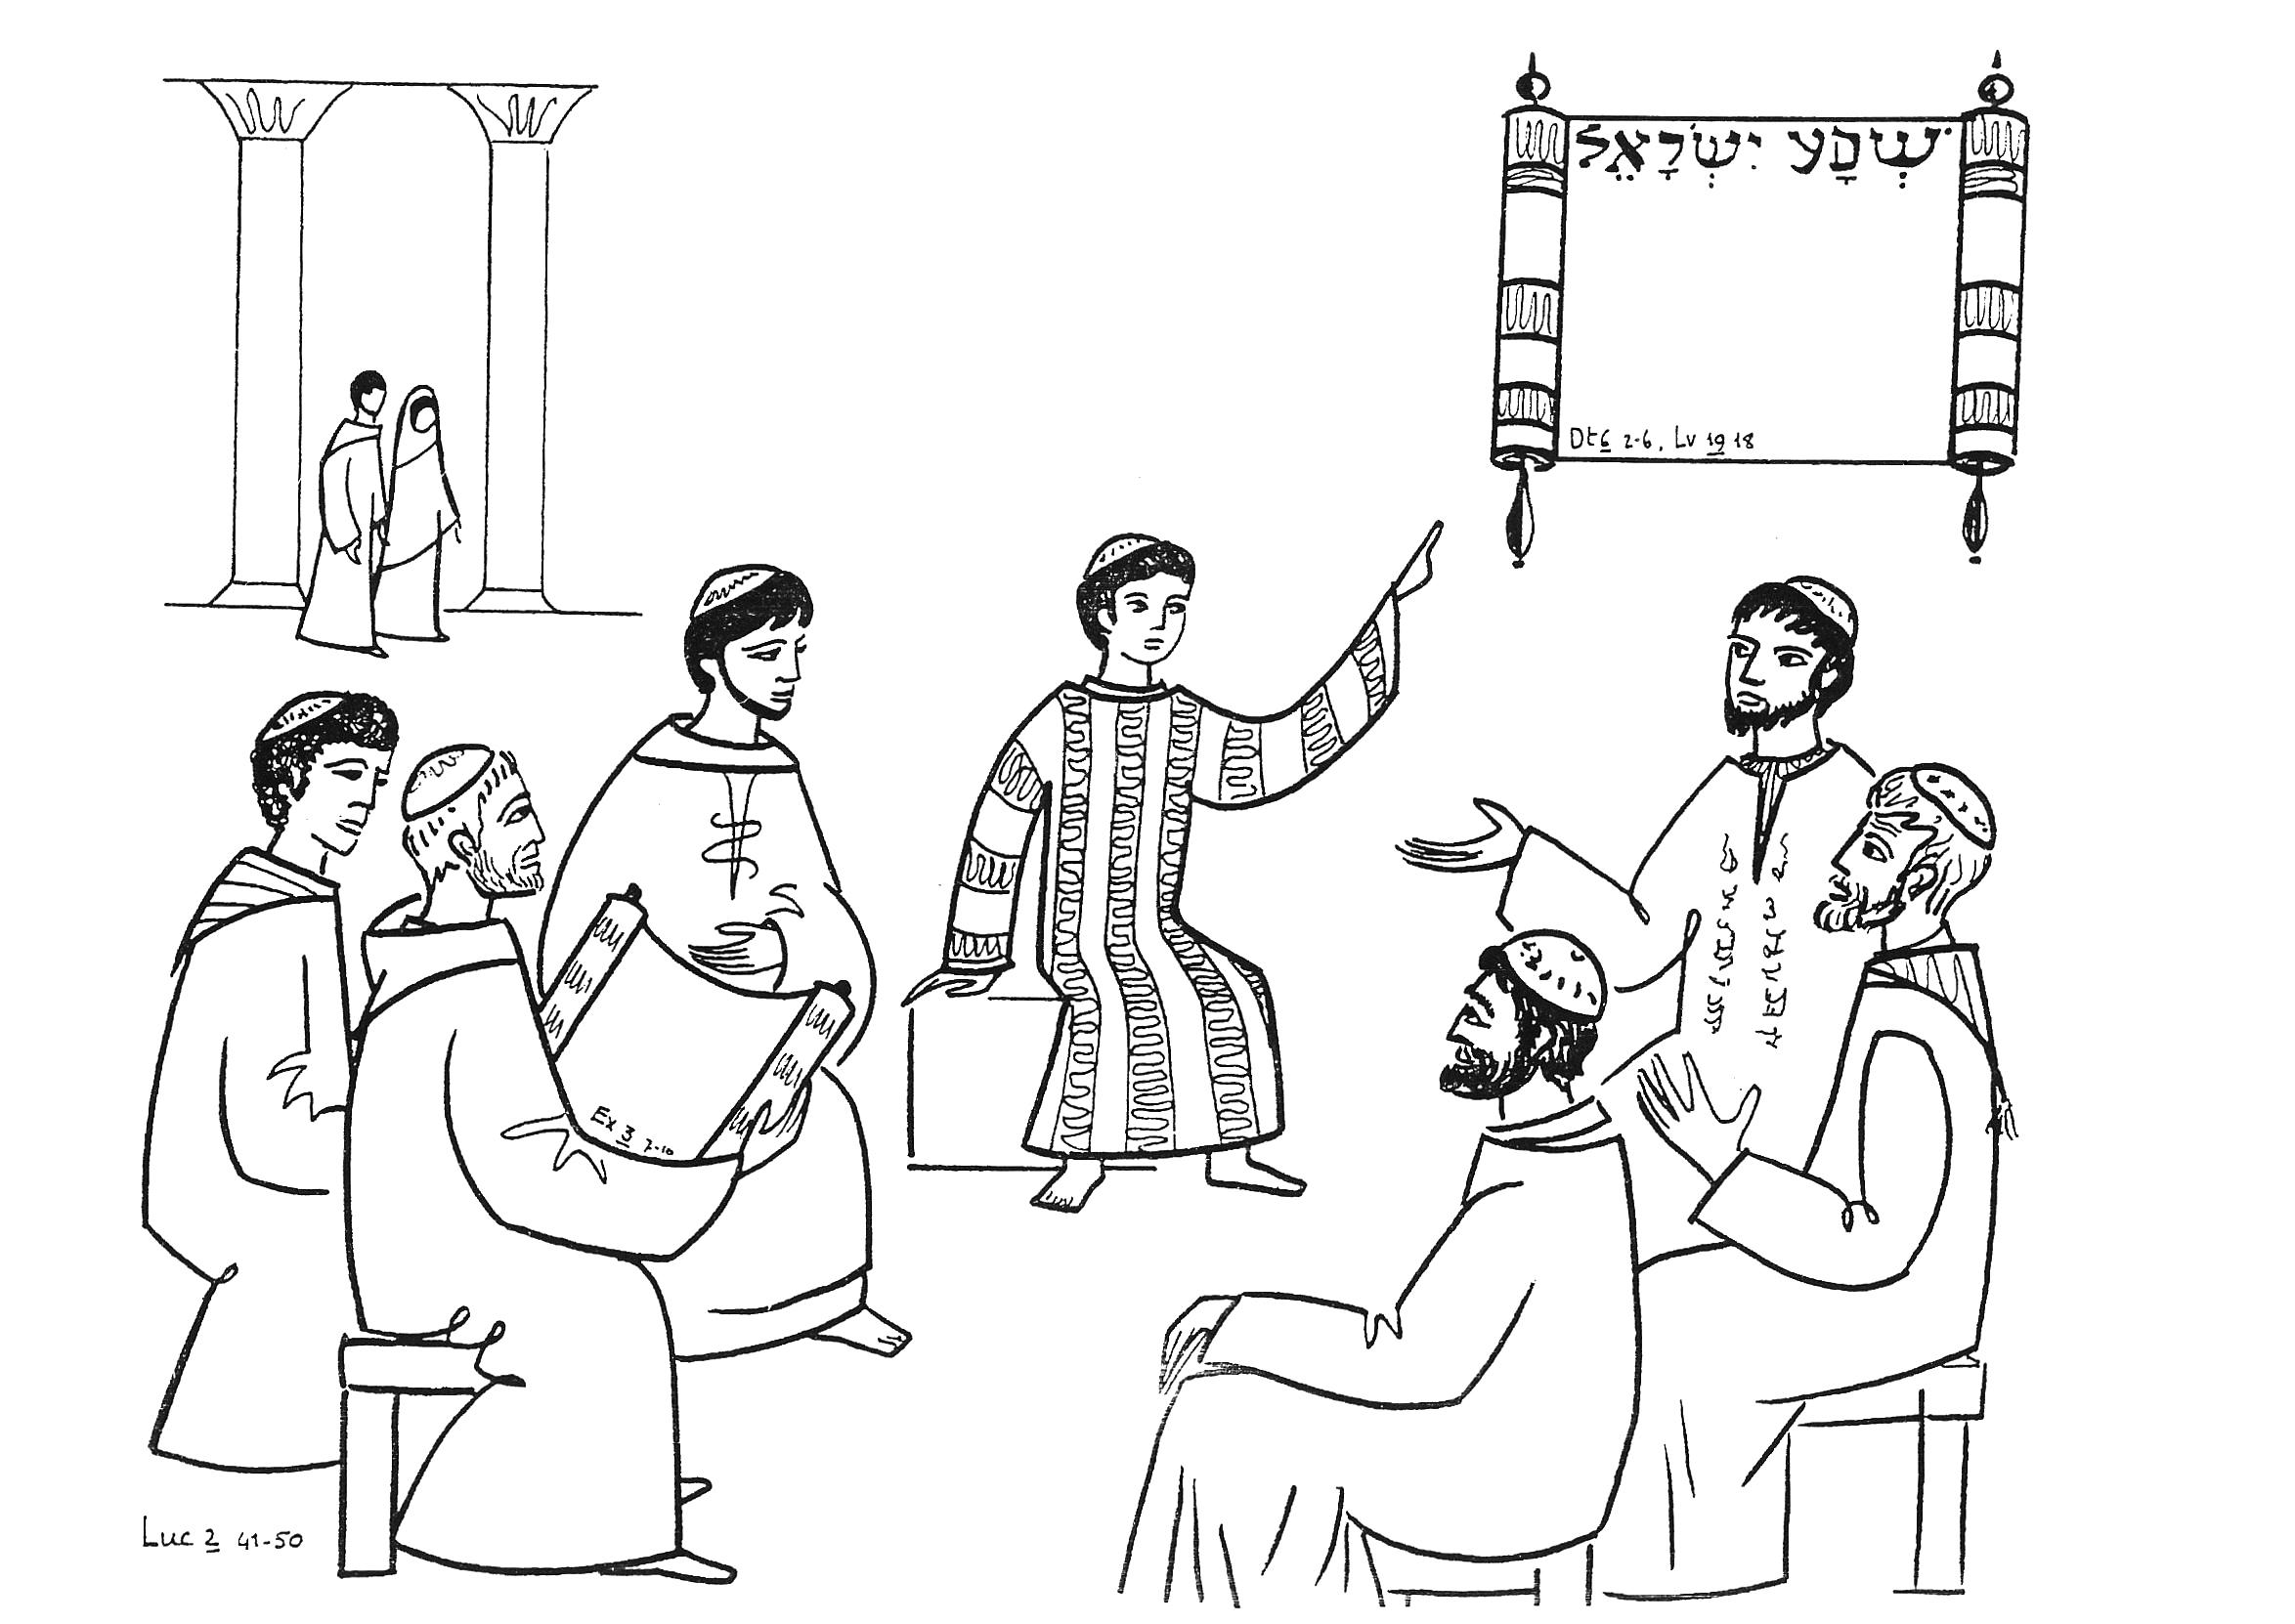 jesus in the temple coloring page jesus in the temple coloring page page the jesus temple in coloring